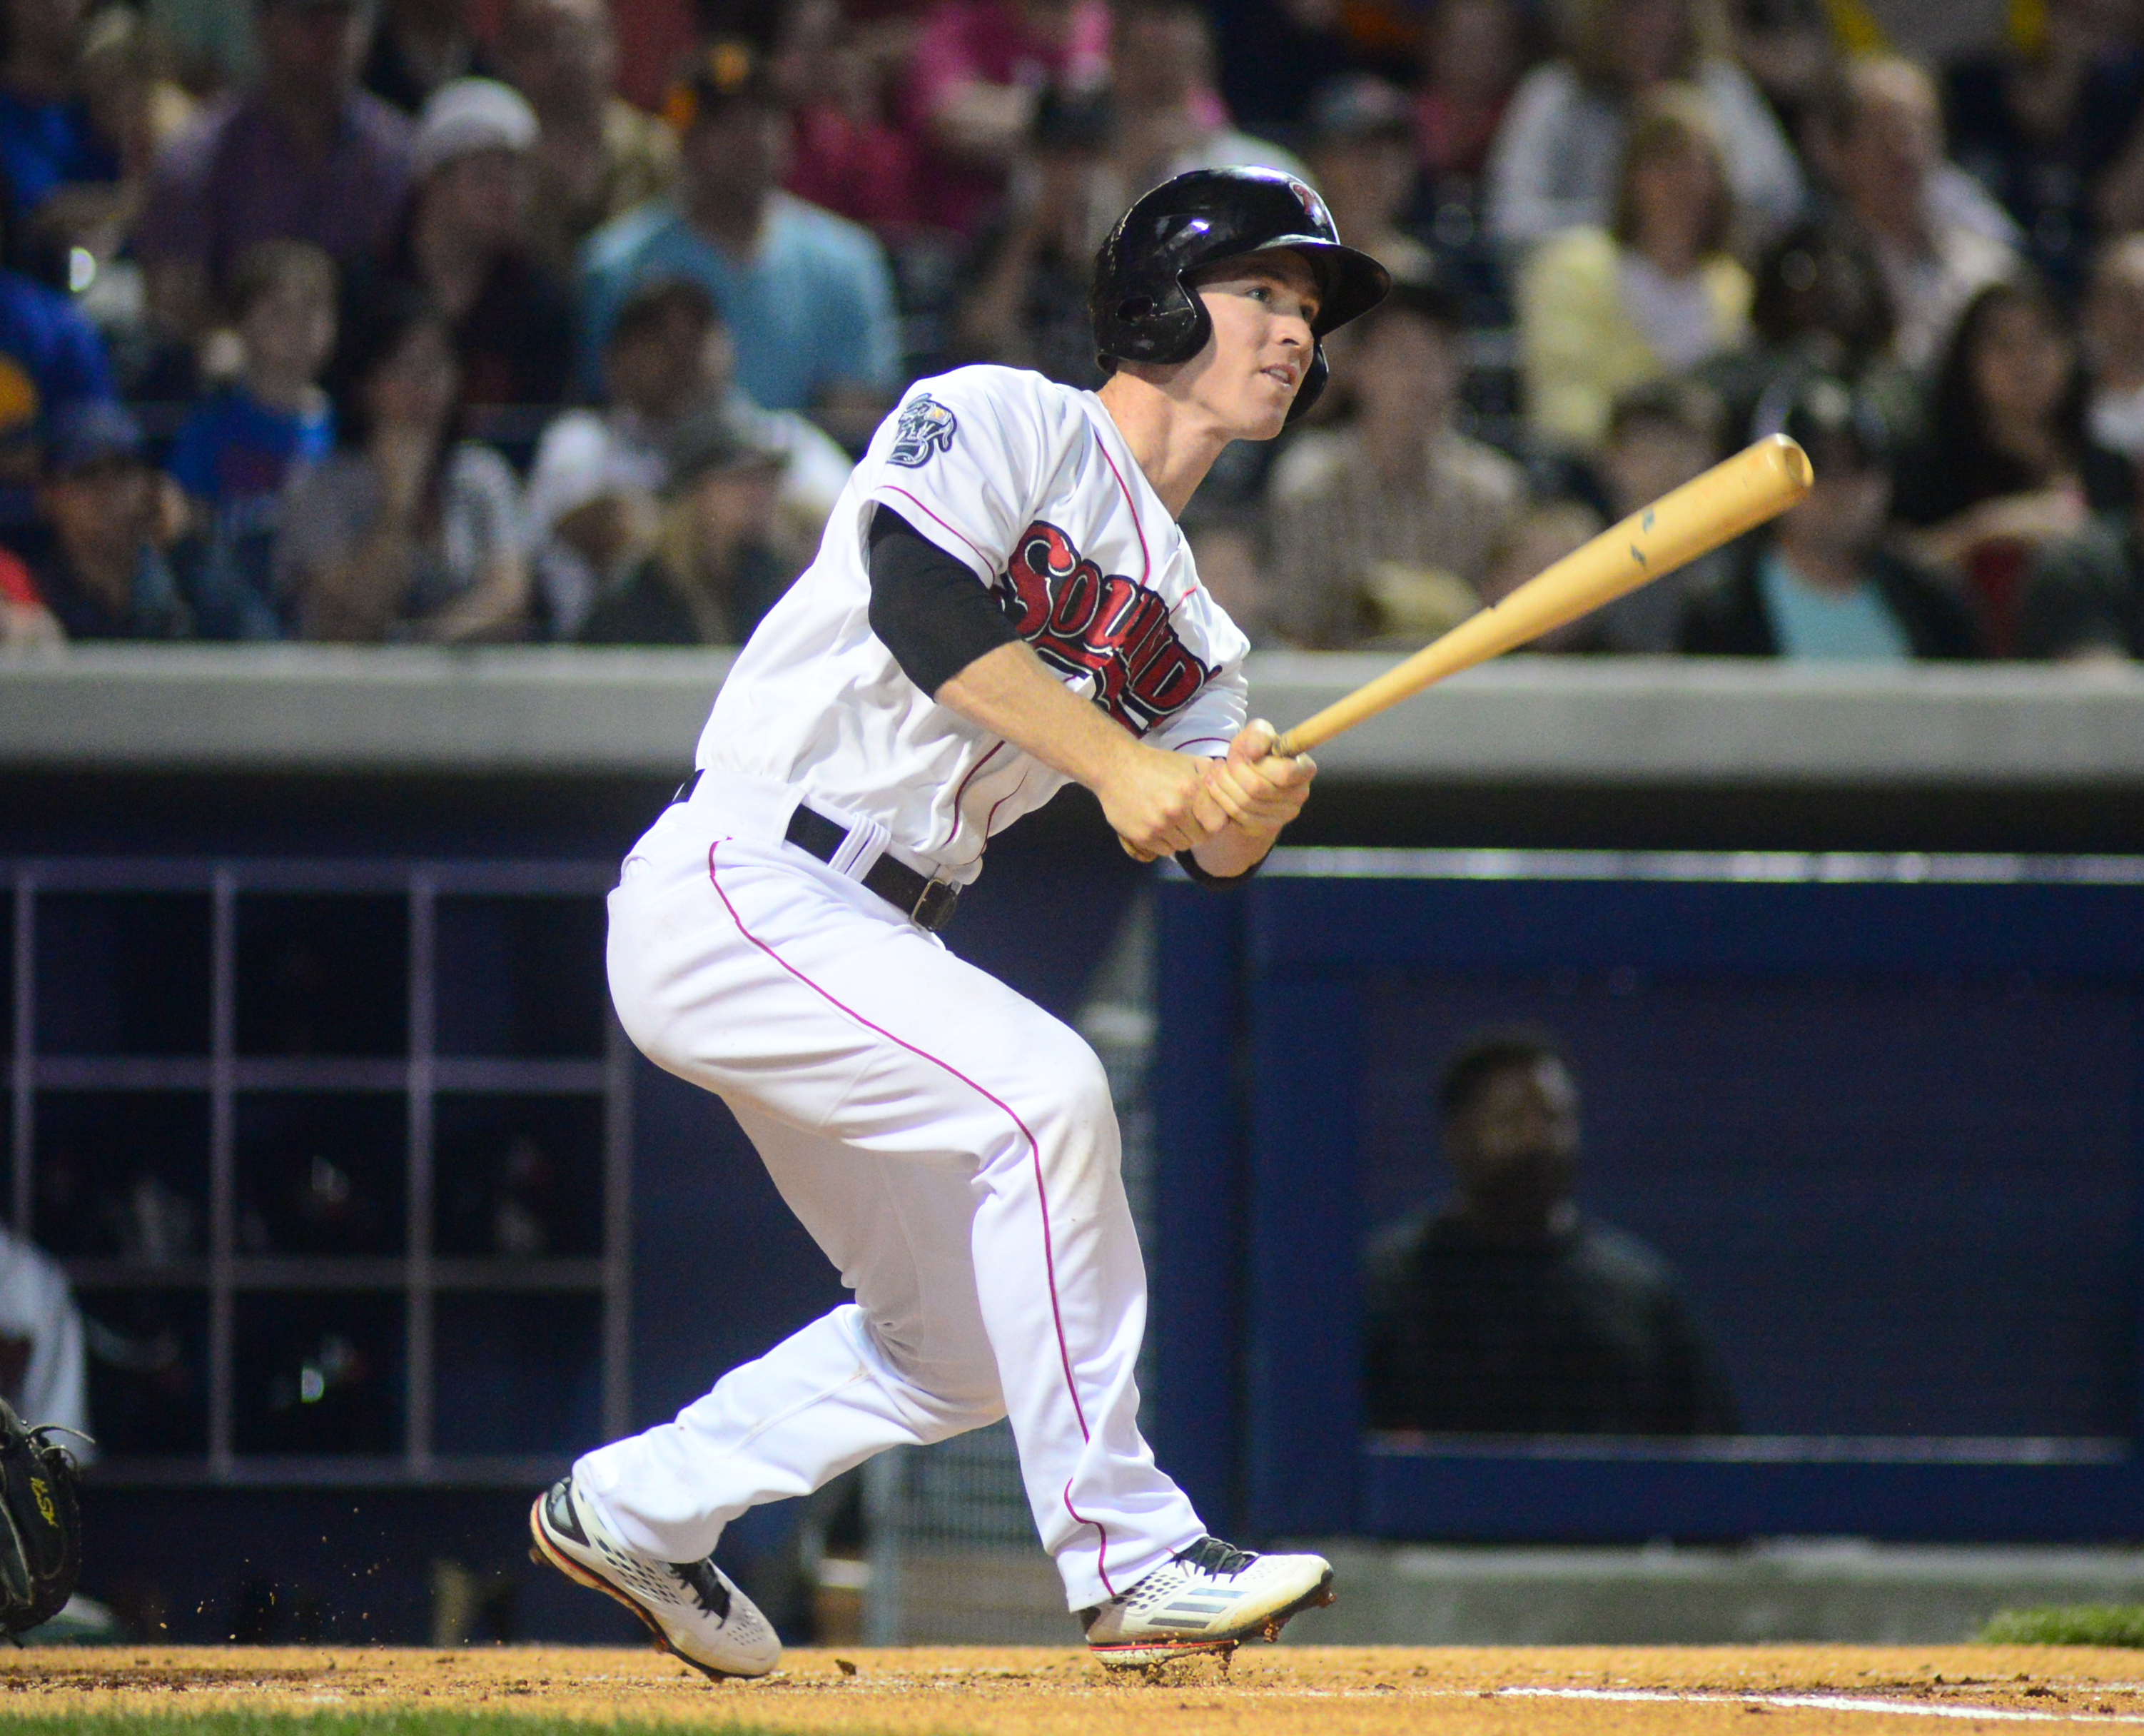 Fan-favorite Joey Wendle Returns for the Nashville Sounds - Phot by Mike Strasinger